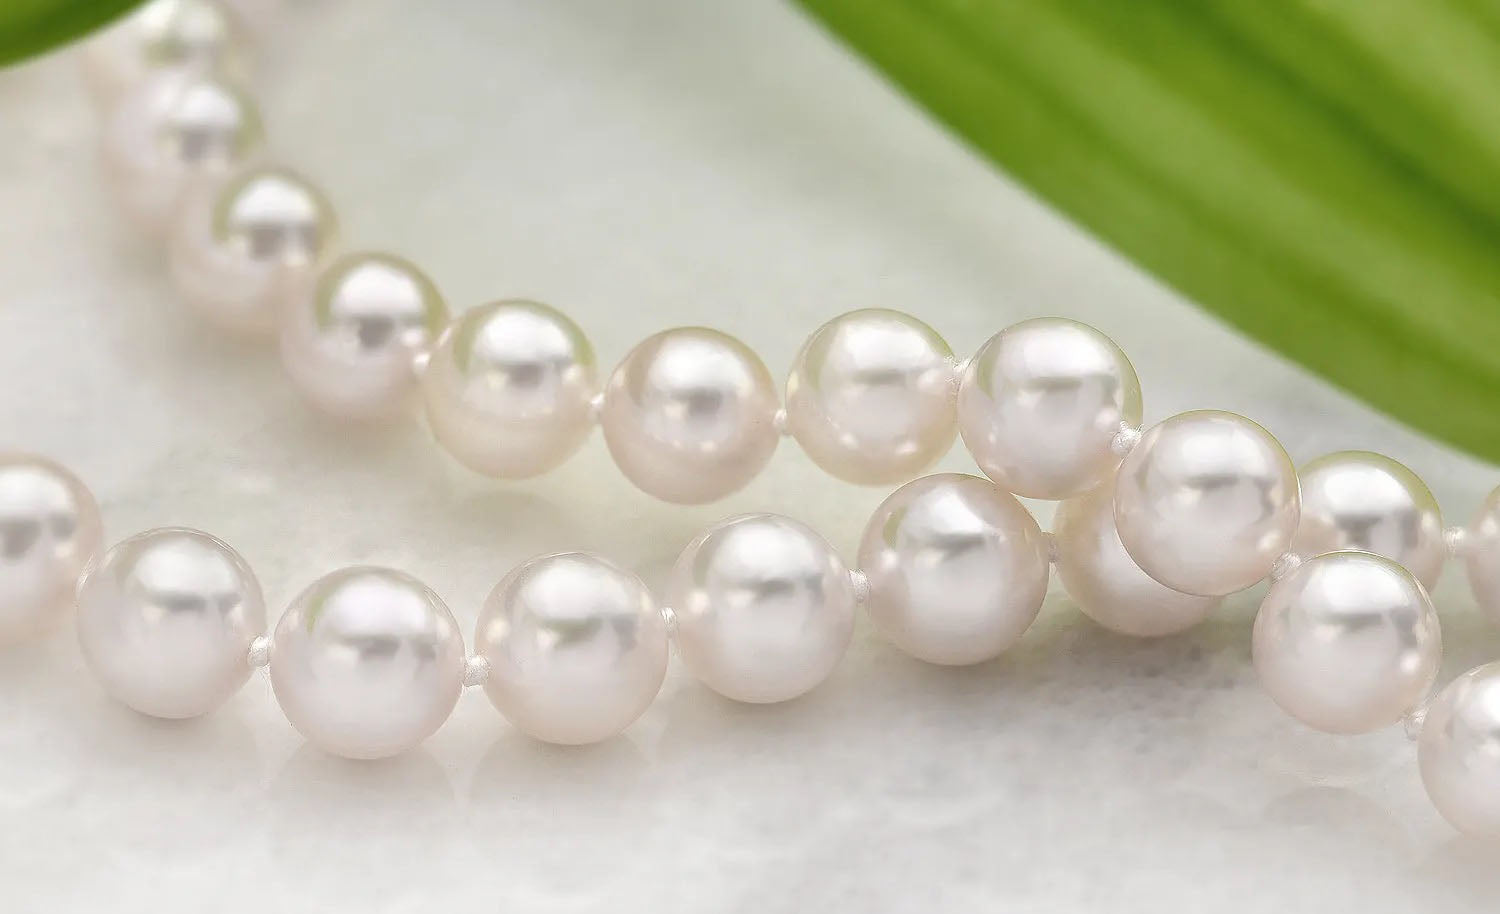 Common Customer Questions: Where Do The Best Akoya Pearls Come From?